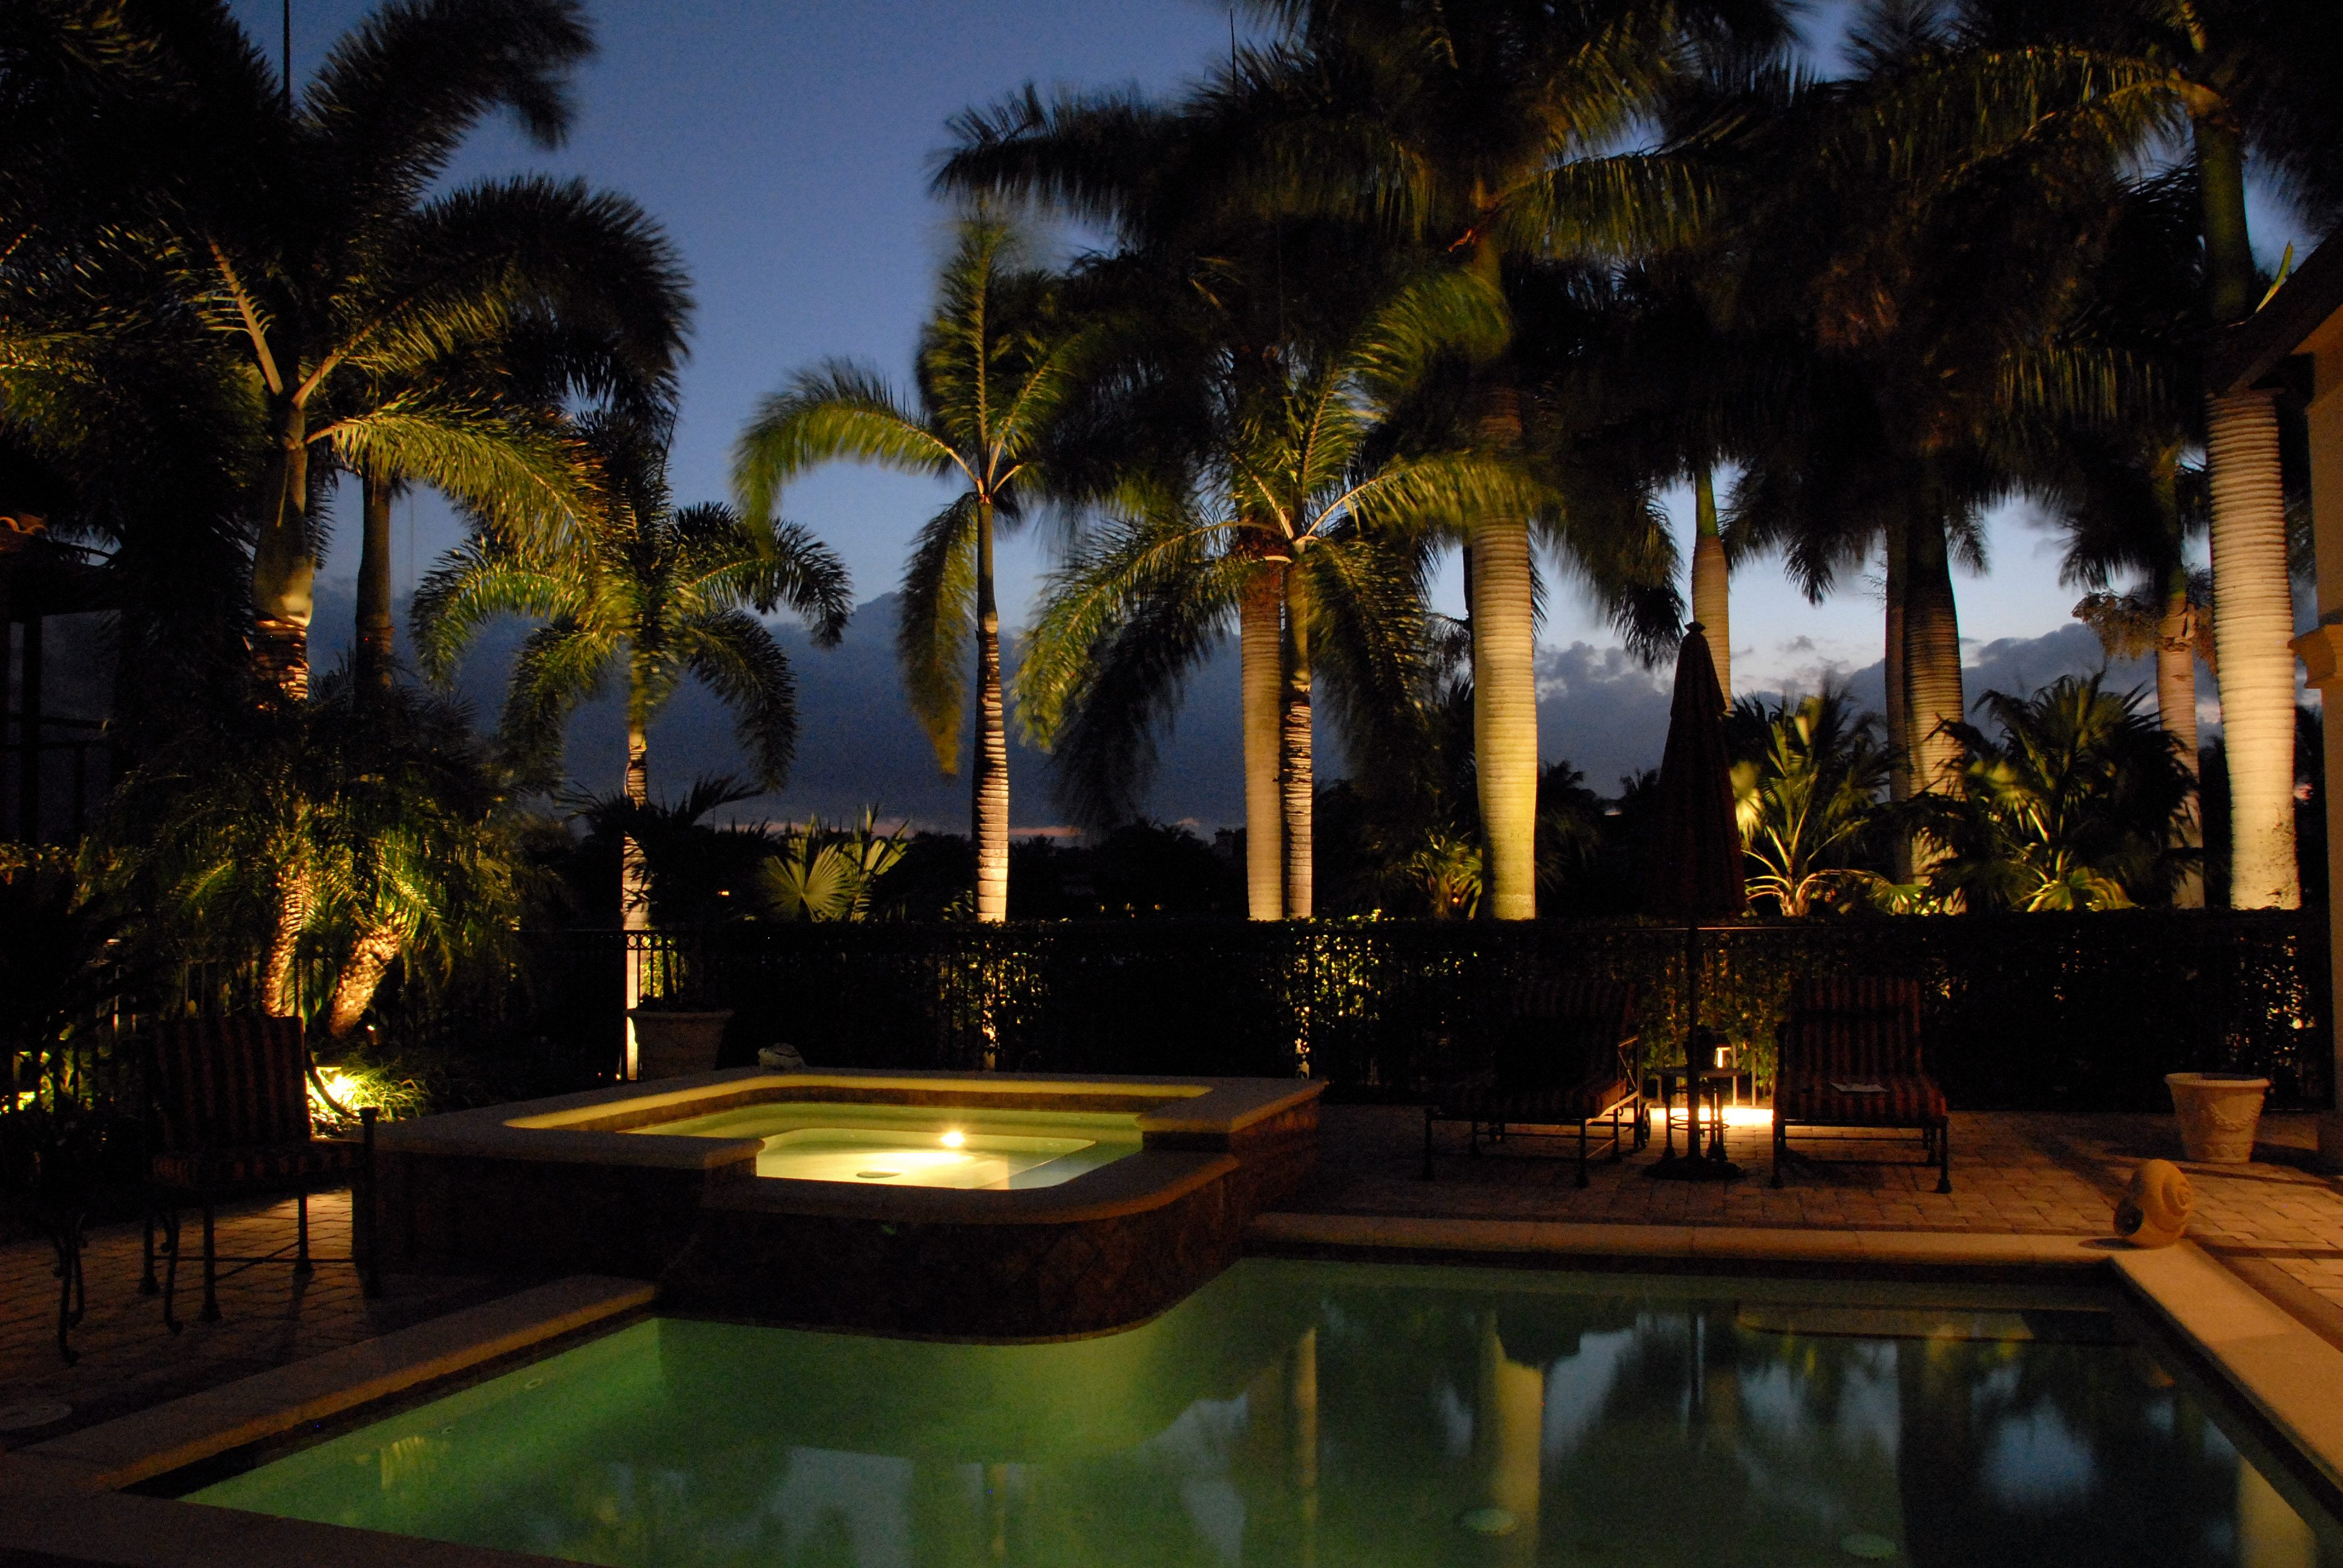 Landscape Lighting Service Provider